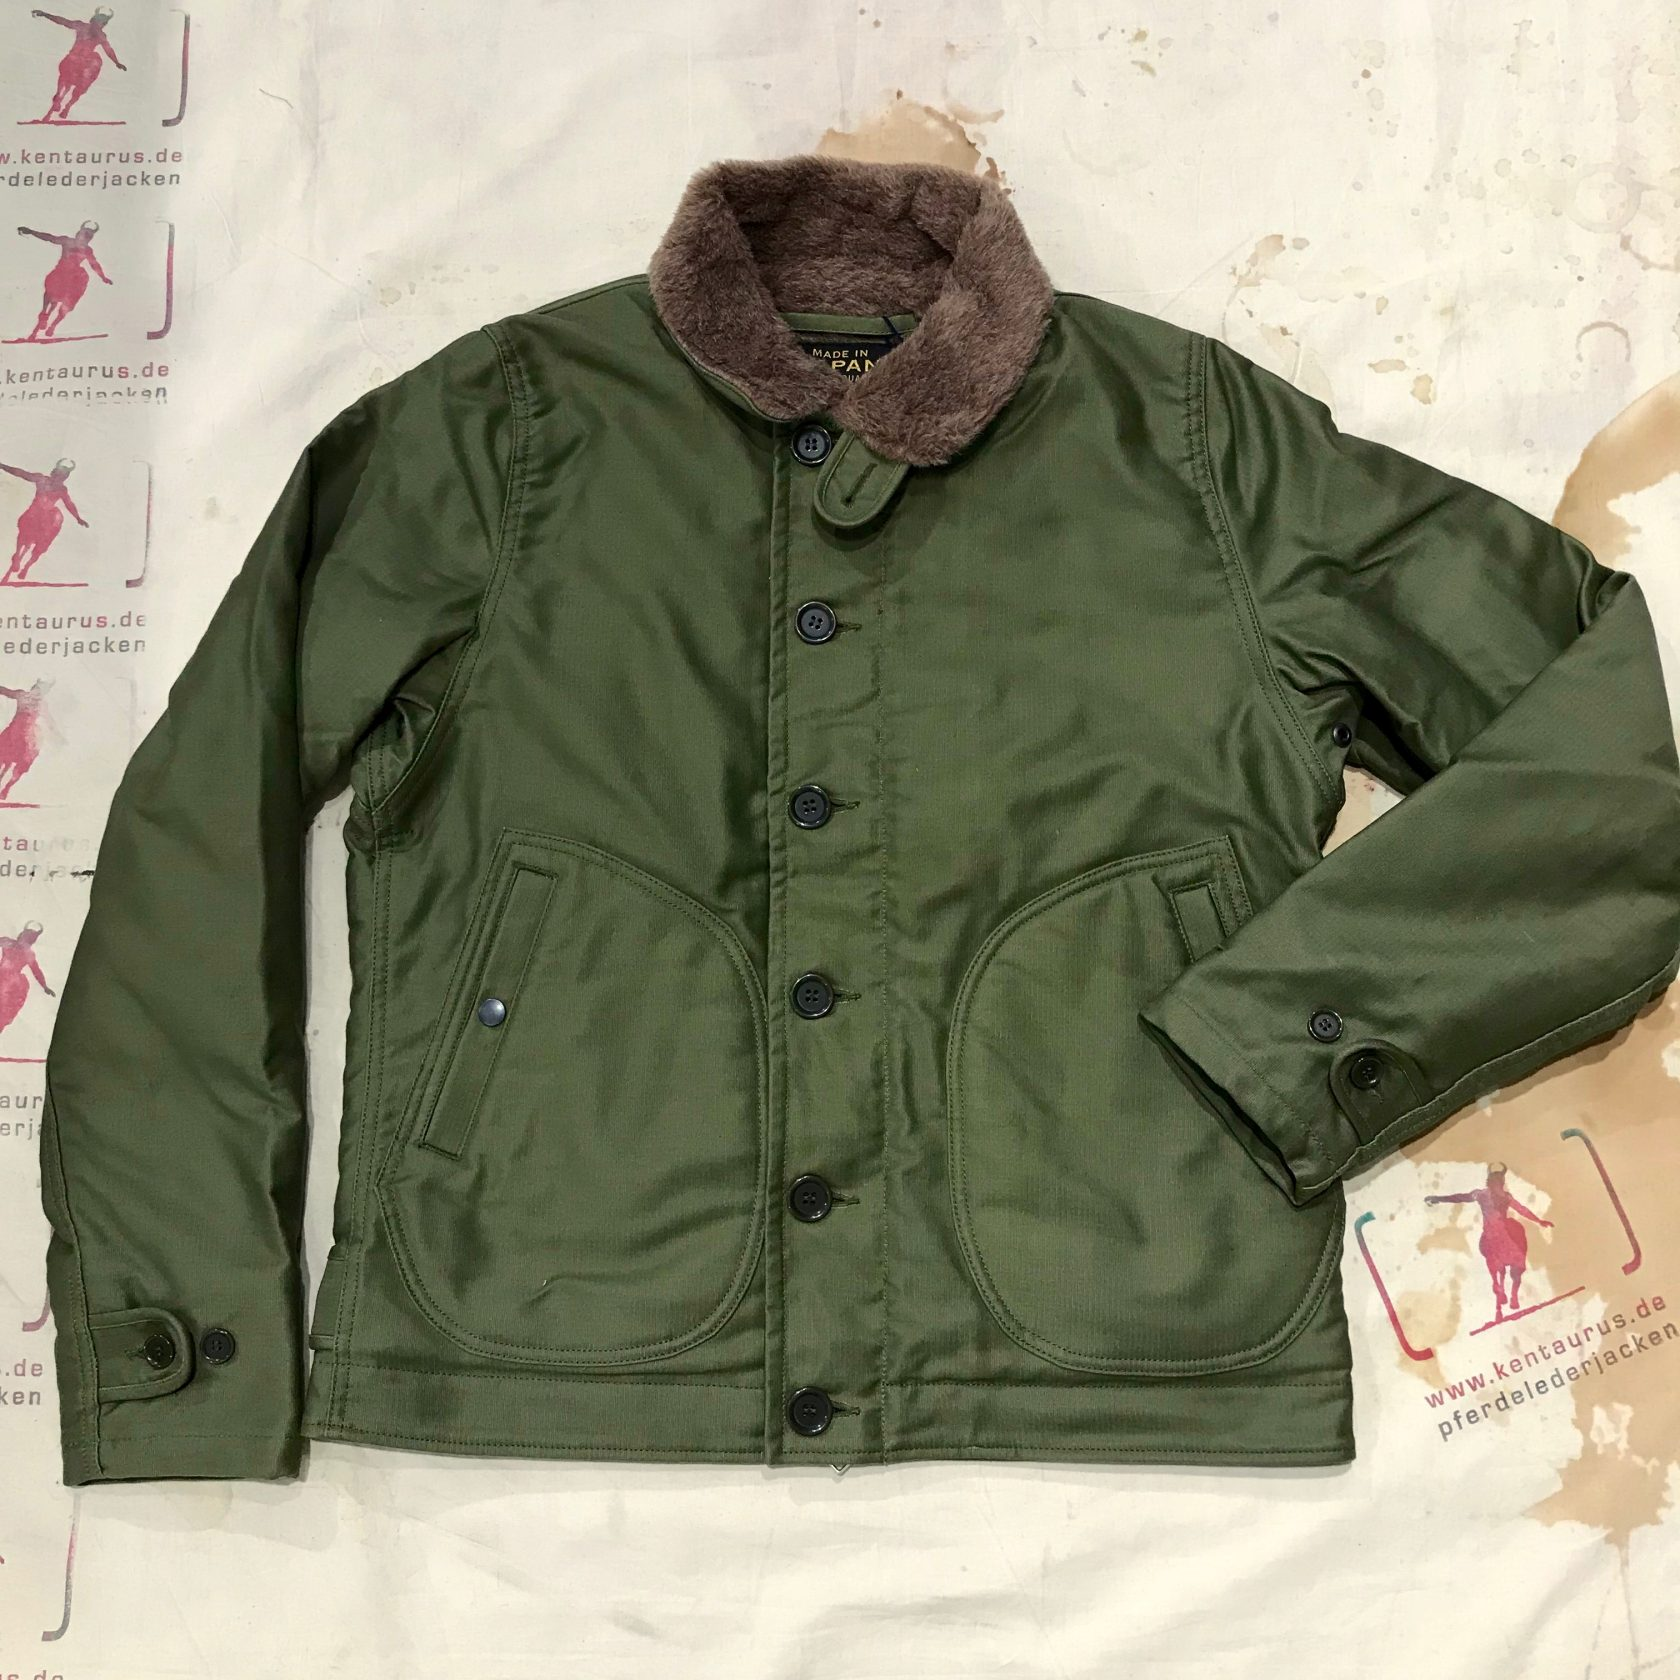 Iron Heart M29 olive and khaki N-1 Deck jacket